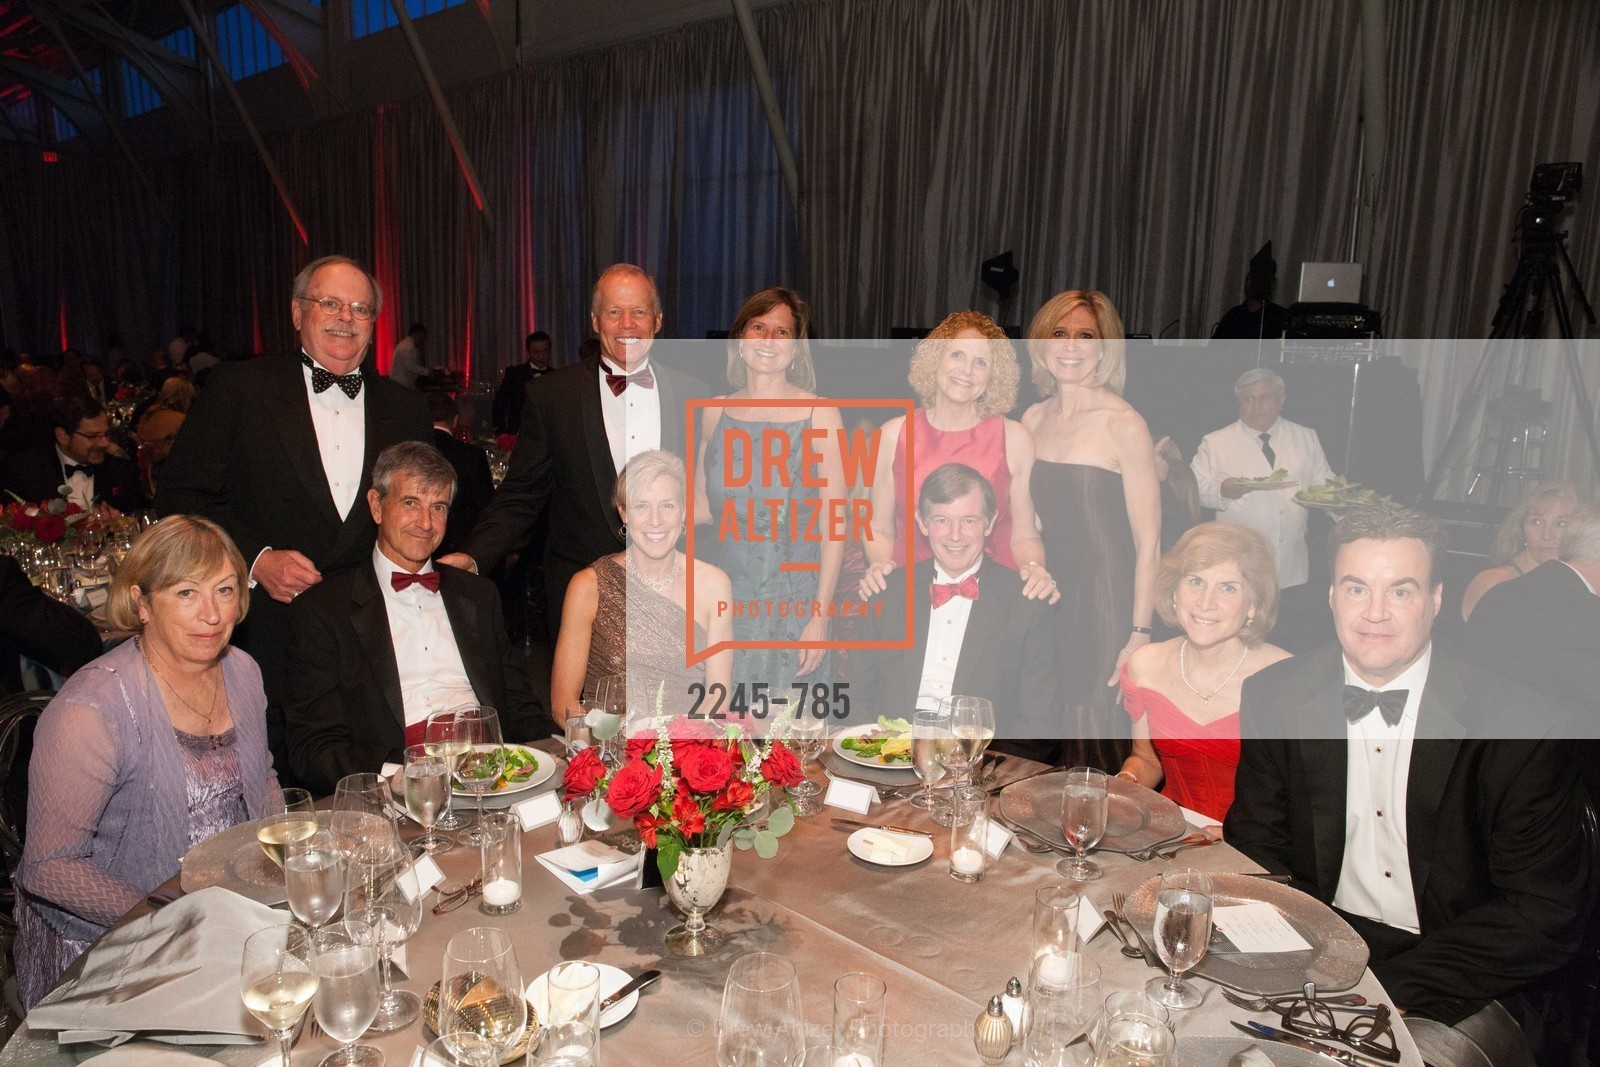 George Dies, Meredith Mills, Sarah Earley, Anthony Earley, Debbie Messemer, Gail McGovern Jim Messemer, 2015 RED CROSS Gala, US, April 11th, 2015,Drew Altizer, Drew Altizer Photography, full-service agency, private events, San Francisco photographer, photographer california